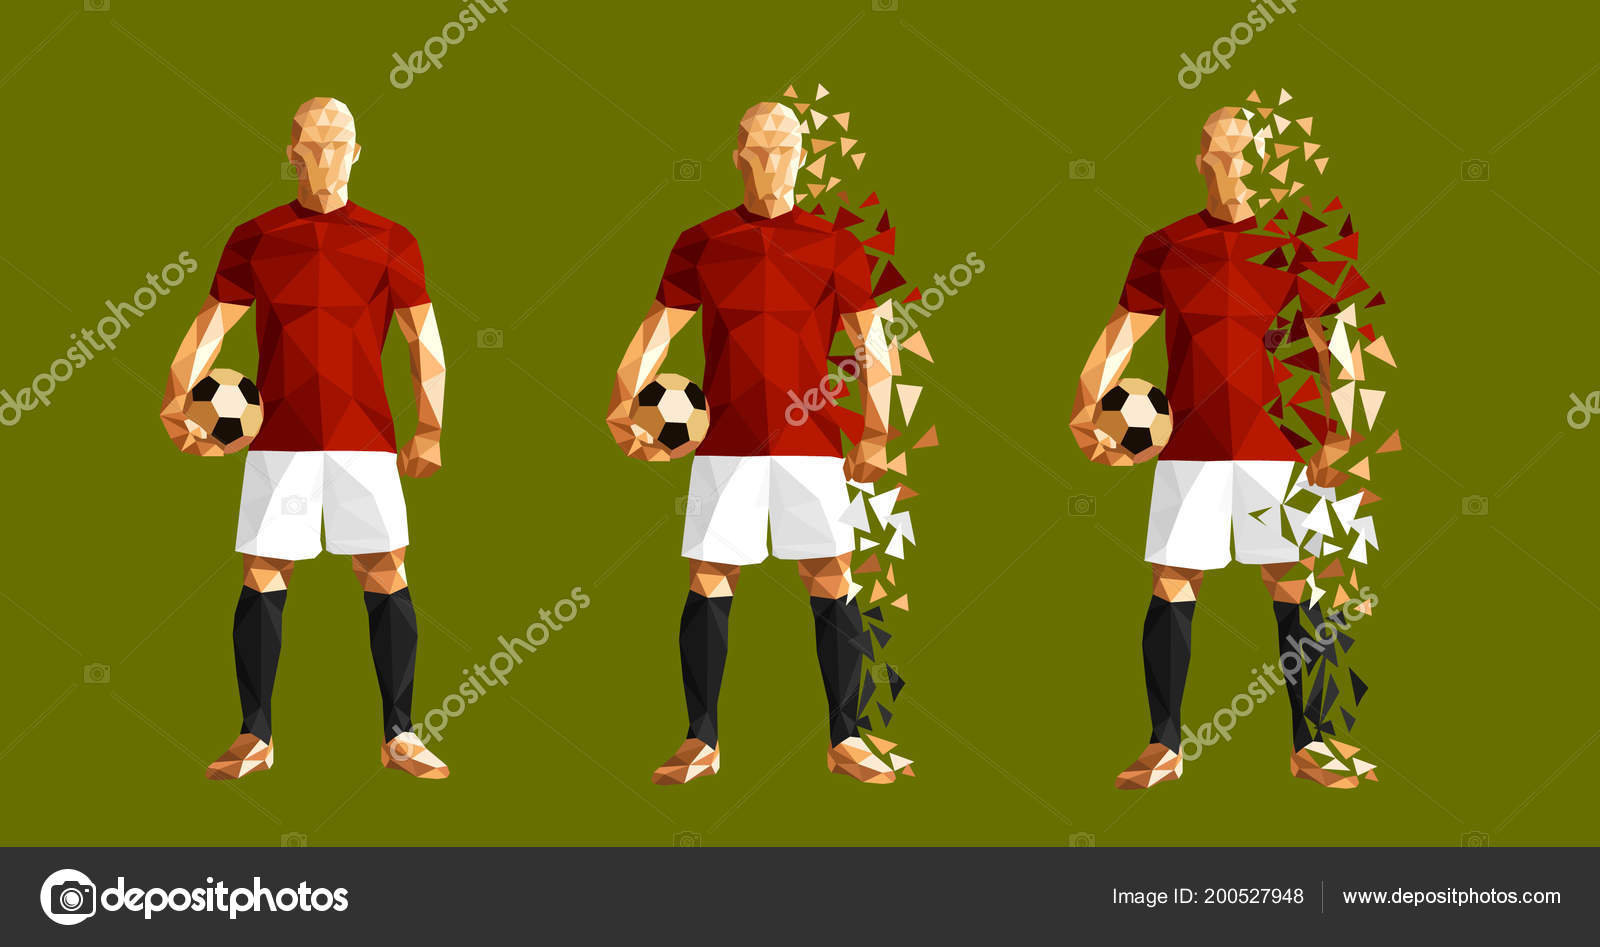 abacf27da56 Vector illustration soccer football player low-poly style concept egypt  kits uniform colour world cup 2018 russia championship — Vector by  vadymburla gmail. ...